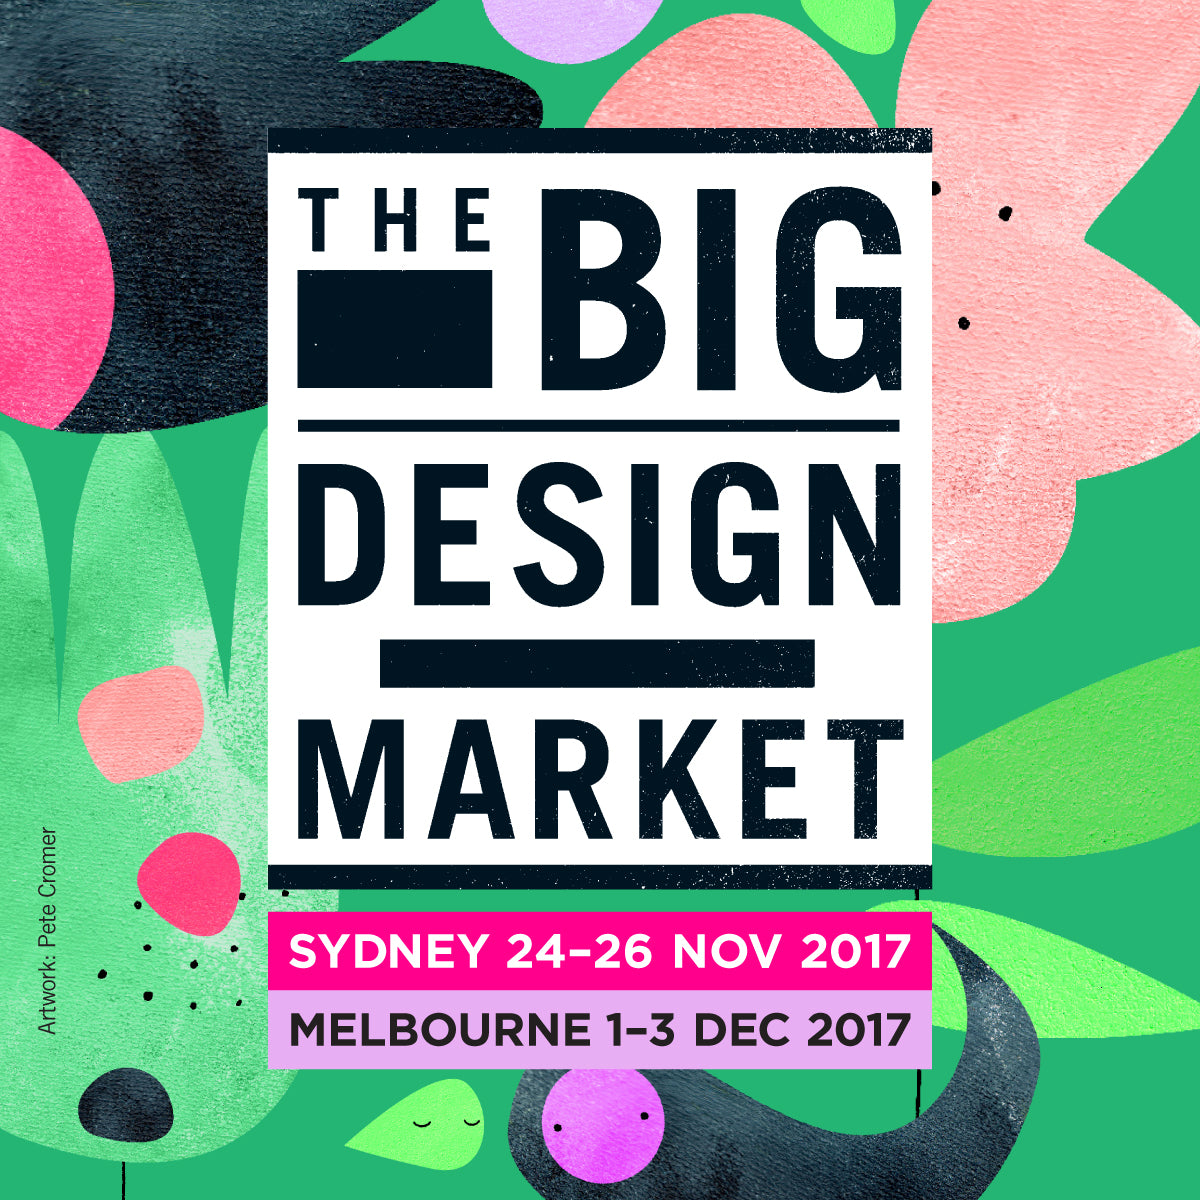 The Big Design Market Sydney - November 24th -26th 2017